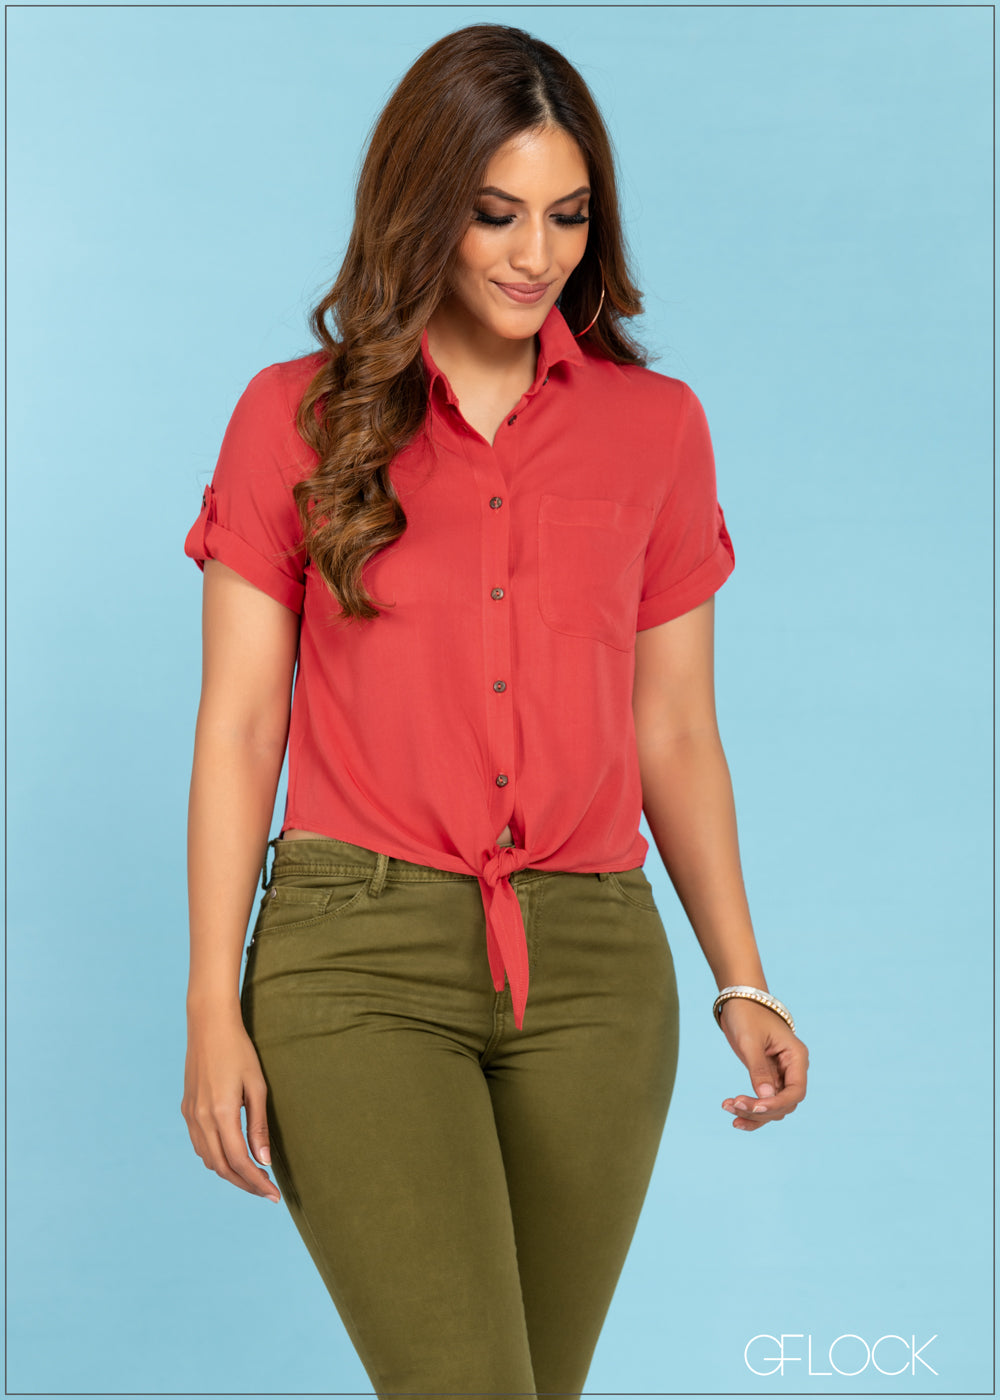 Hem Tie Up Top - GFLOCK.LK